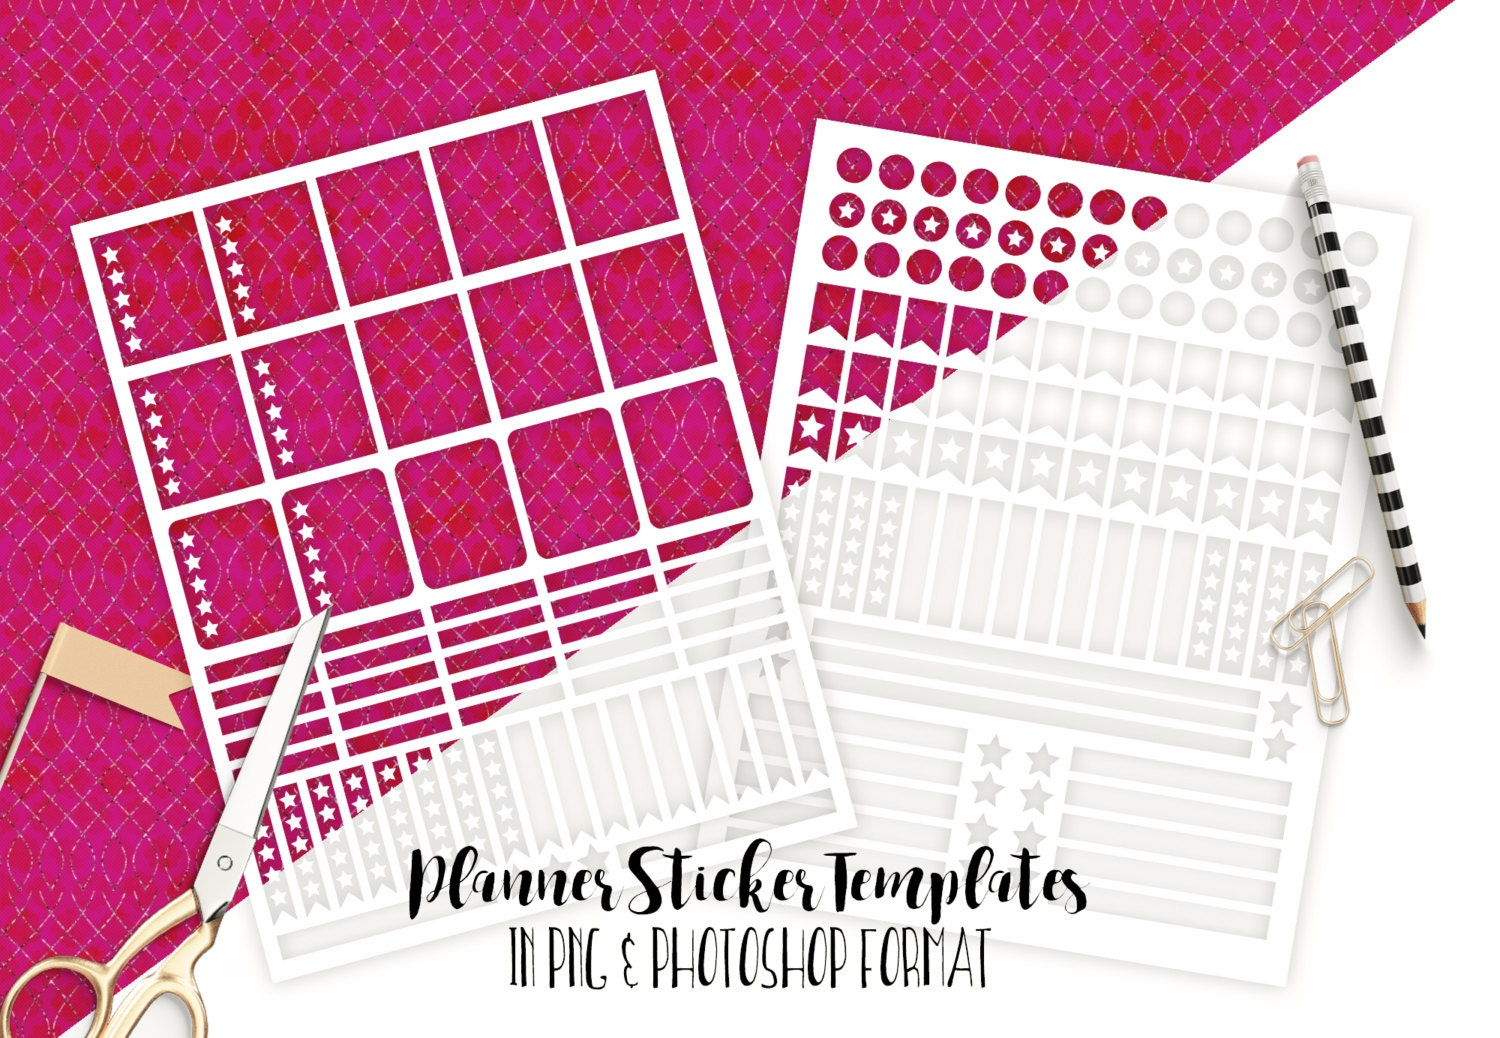 PLANNER STICKER TEMPLATES Commercial Use Blank Diy Sticker ... for Planner Stickers Template  568zmd